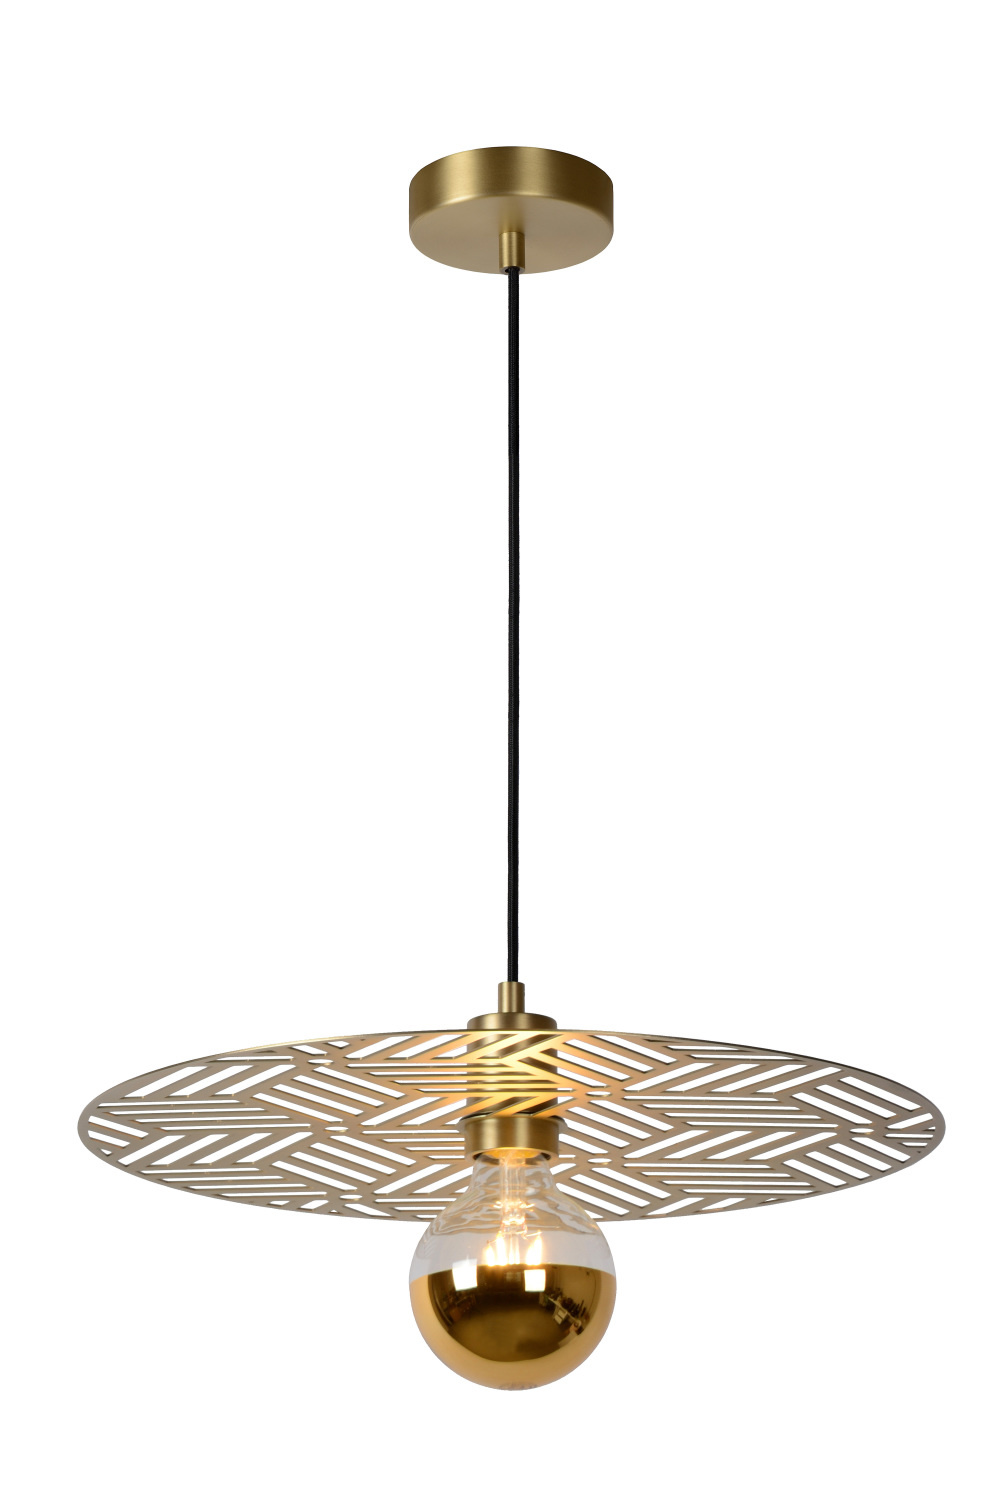 Lucide OLENNA Hanglamp-Mat Go.-Ø40-1xE27-40W-Staal